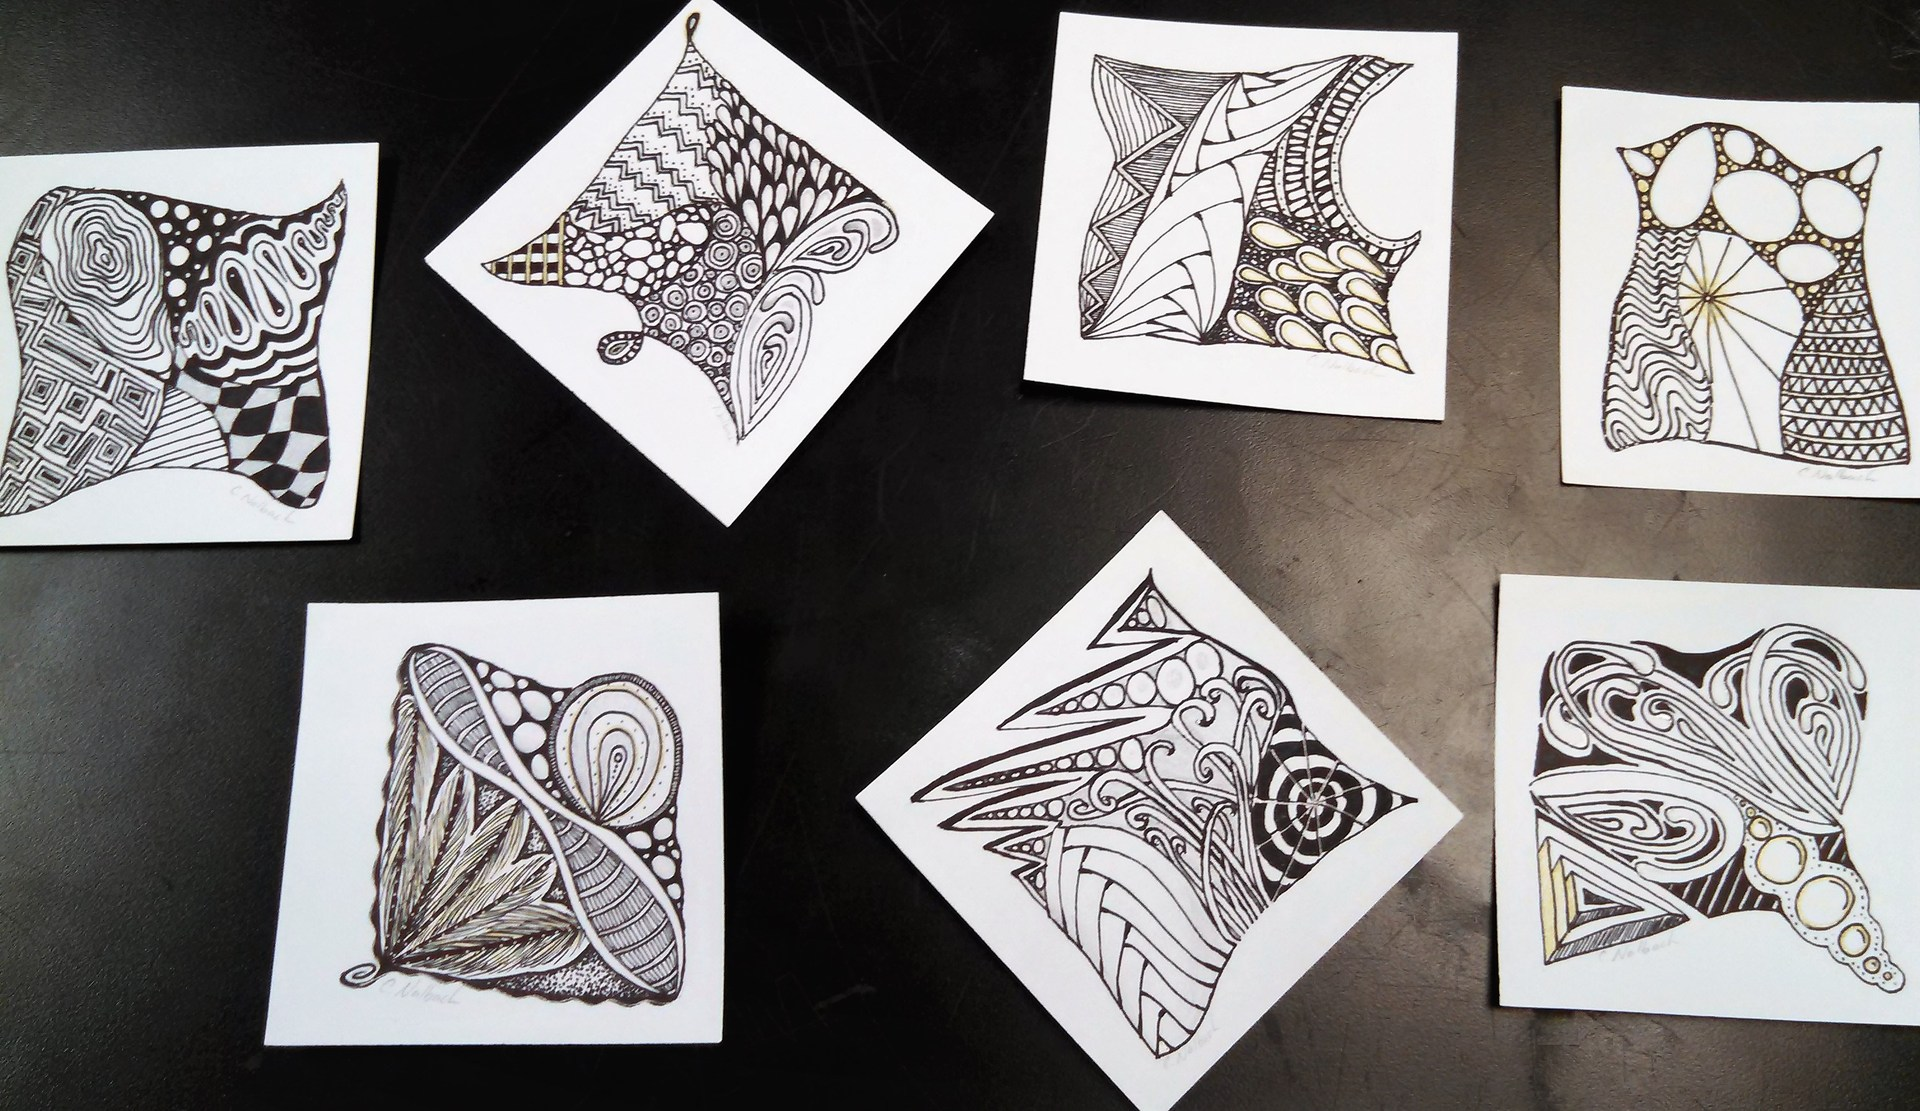 7 squares of paper with zentangle patterns drawn on them